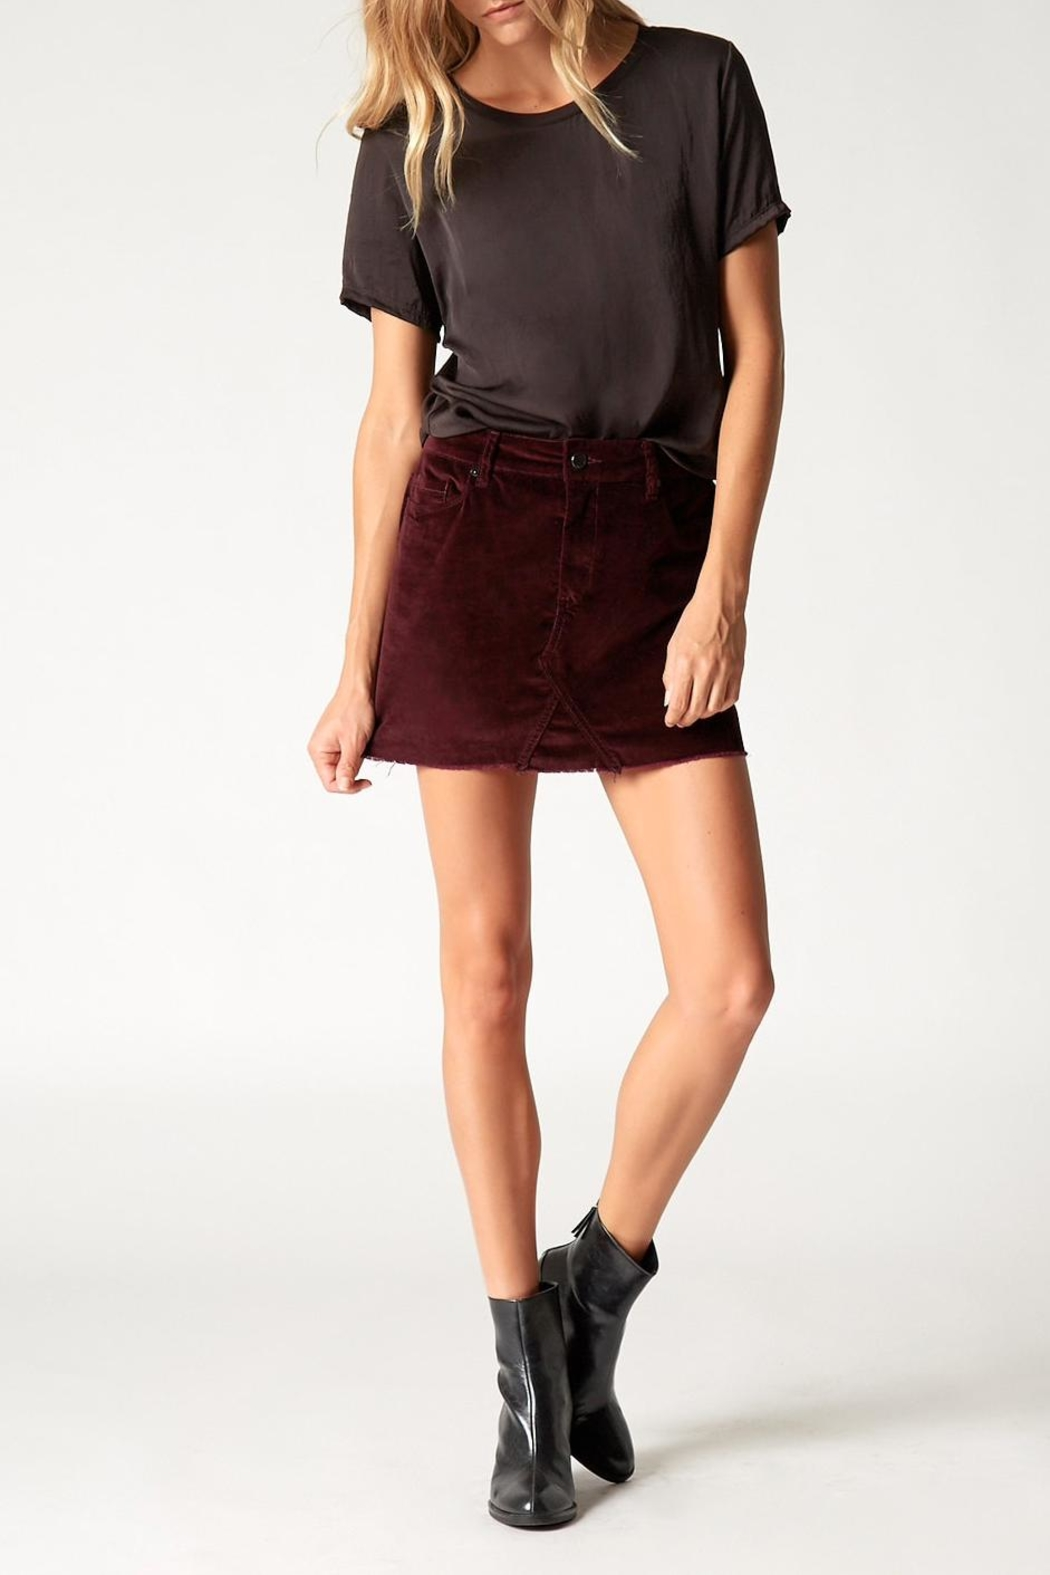 Blank NYC Wine Buzz Skirt - Back Cropped Image